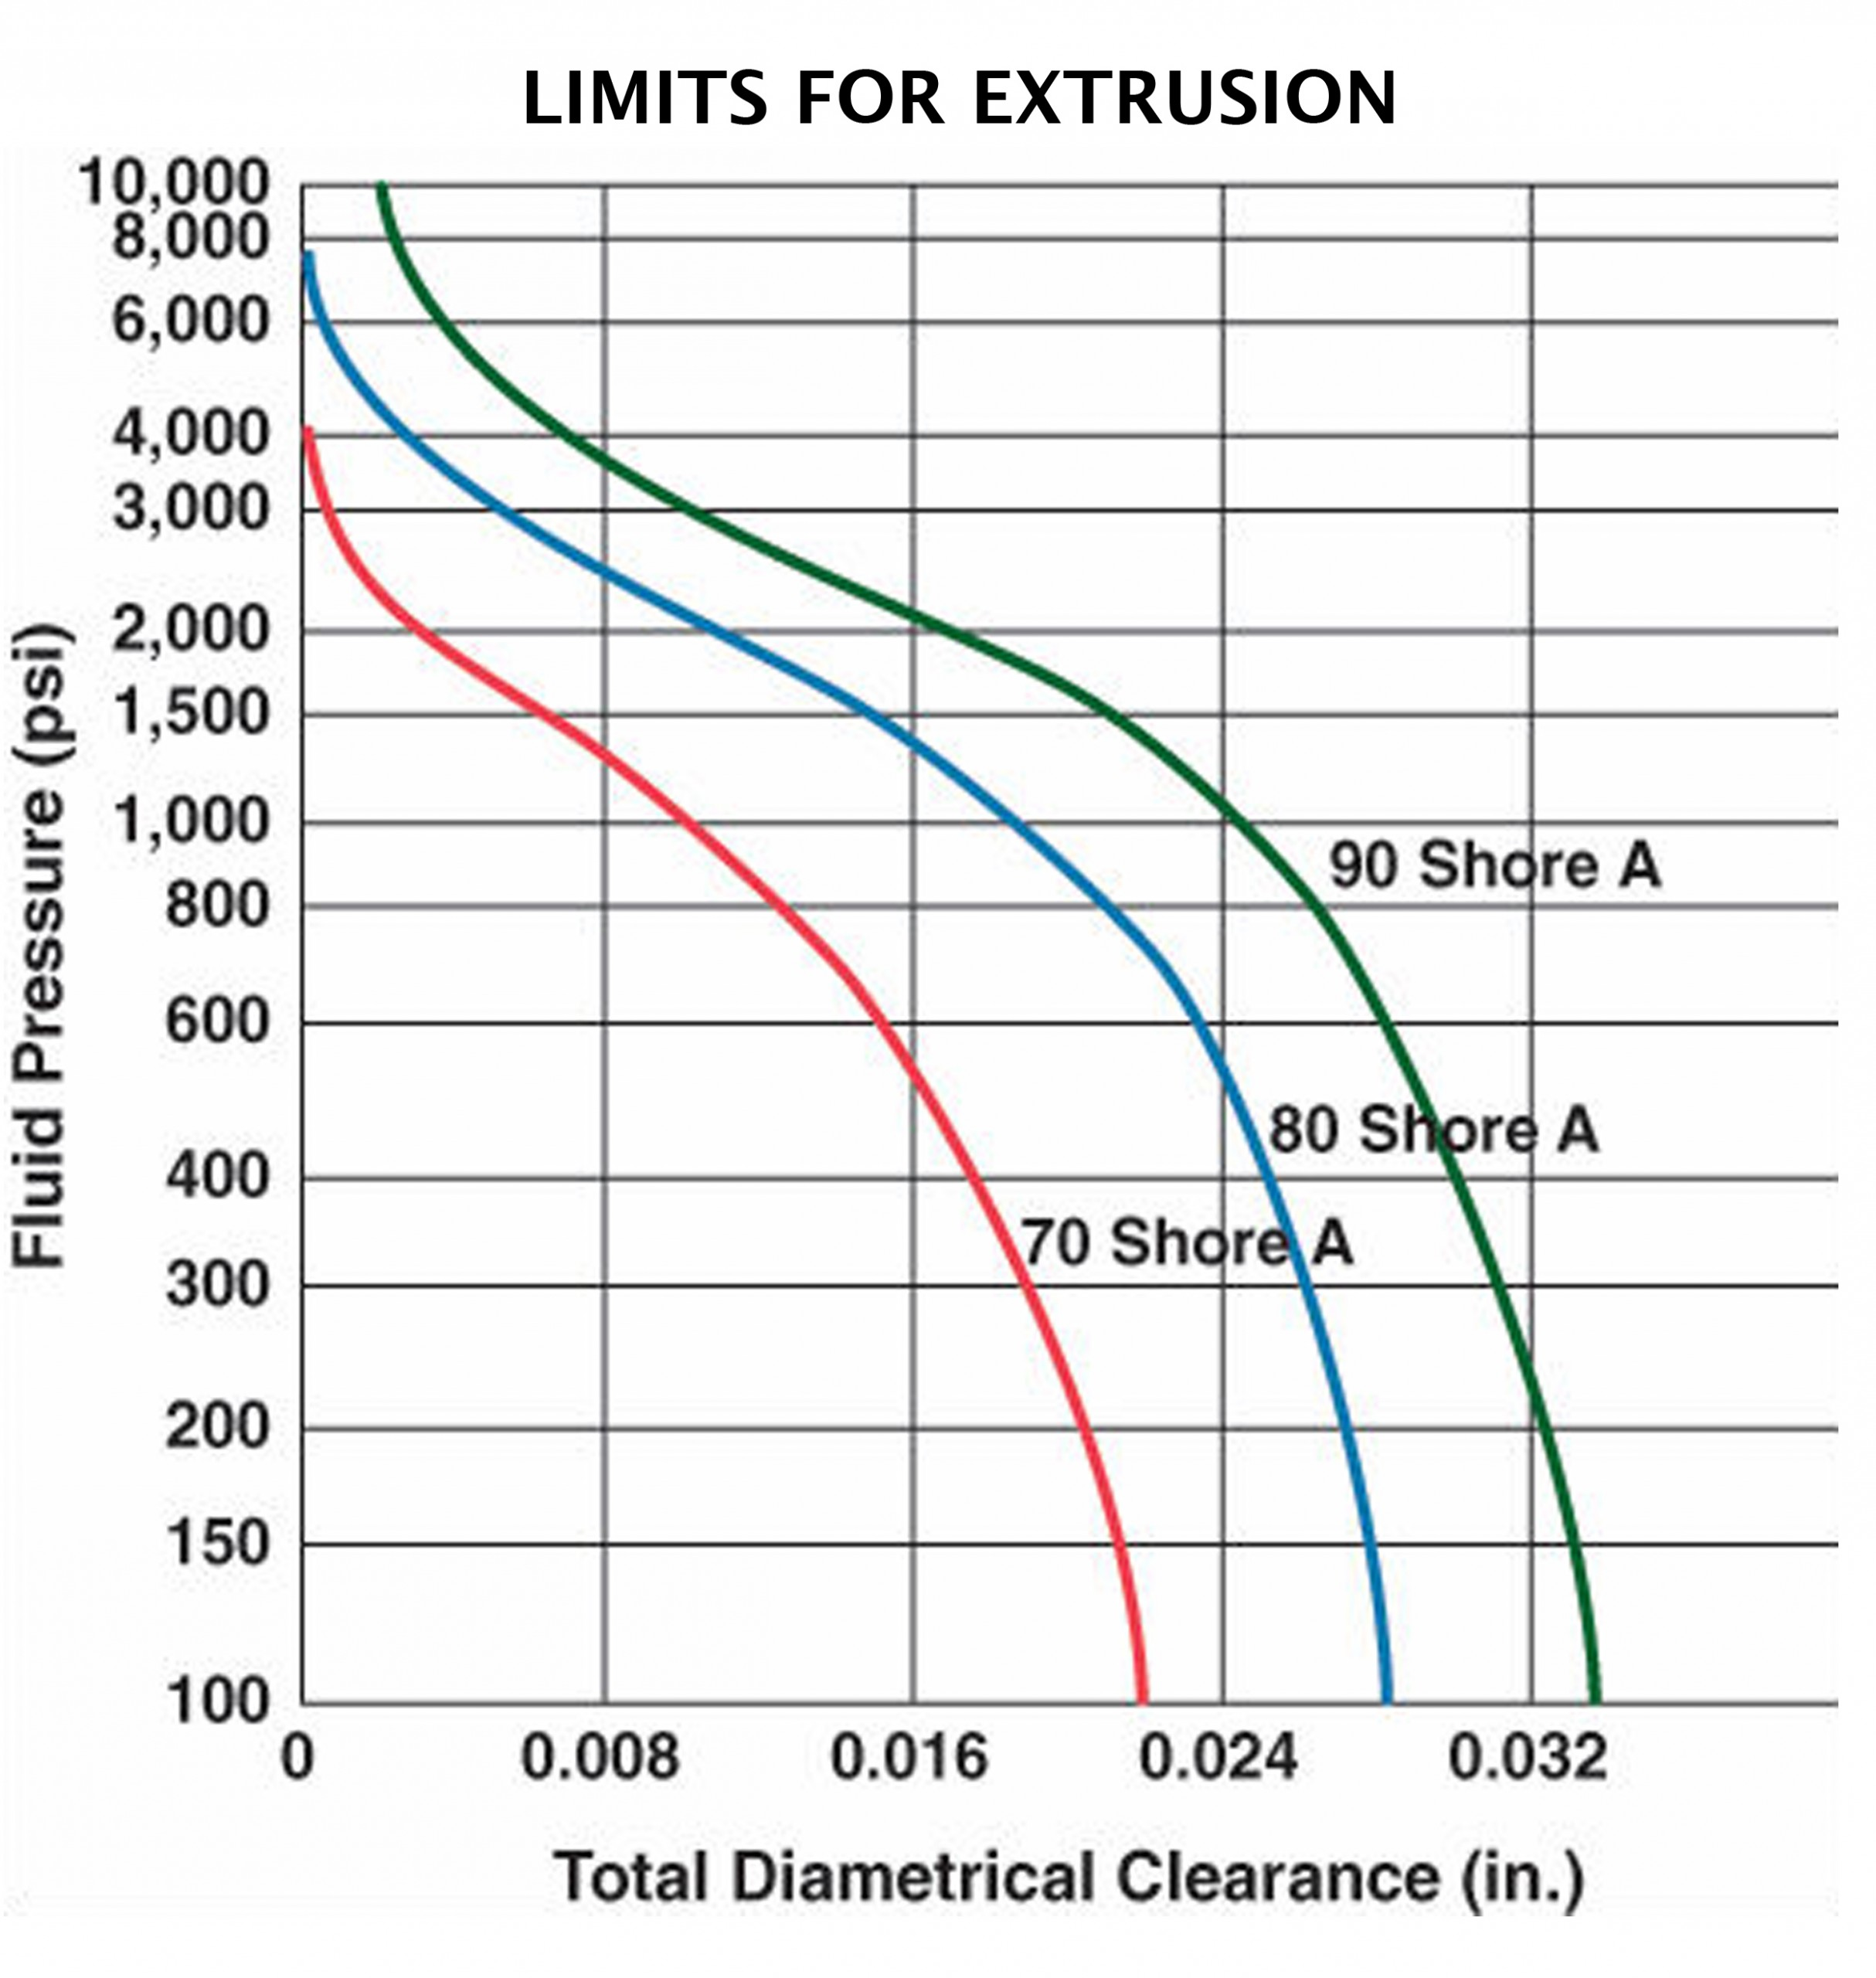 Patriot Fluid Power rubber o-ring extrusion/diametrical clearance chart